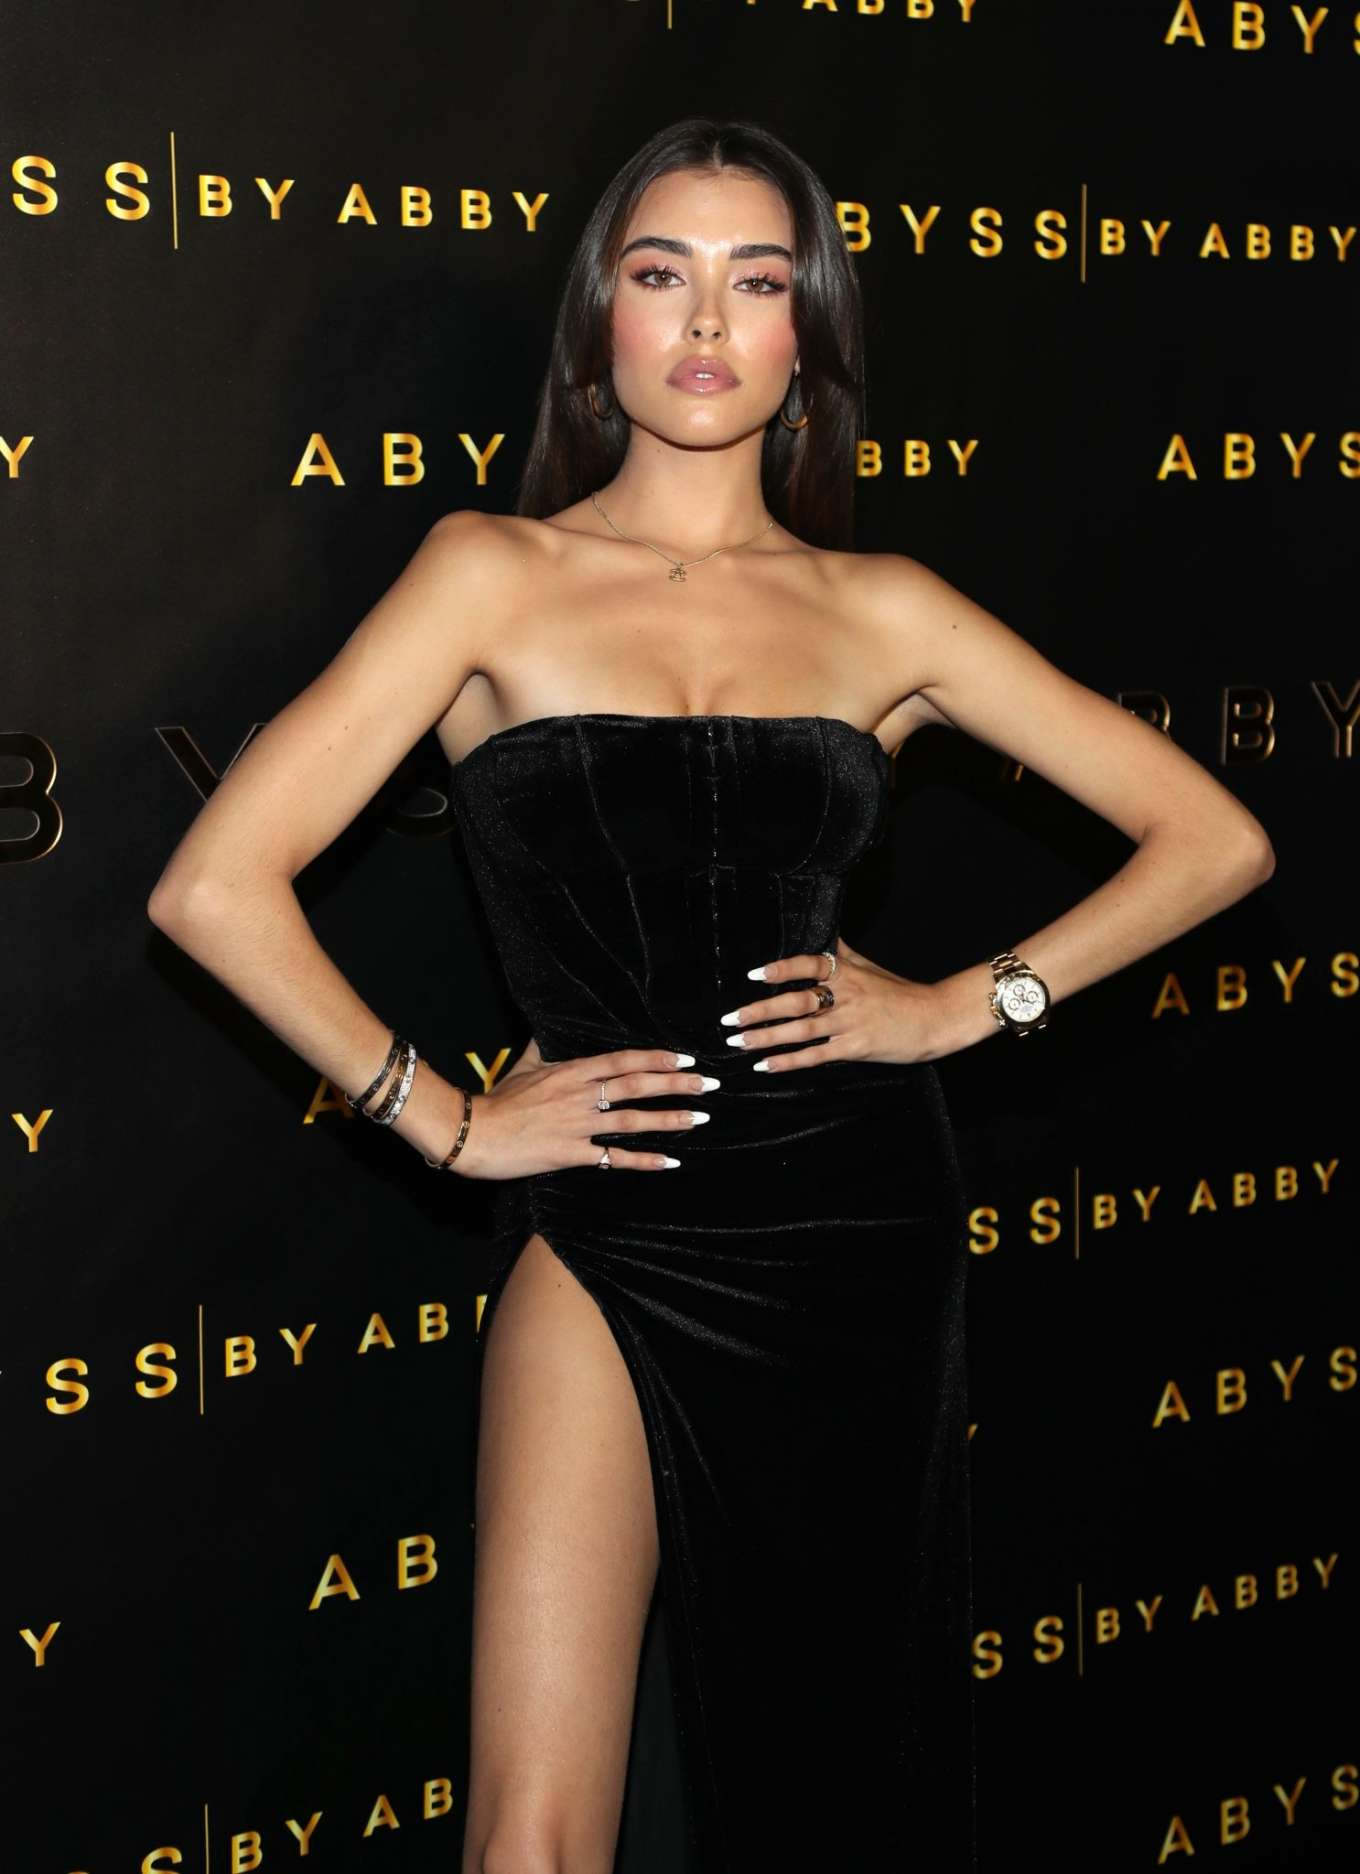 Madison Beer - Abyss By Abby Launch at Beauty and Essex in LA